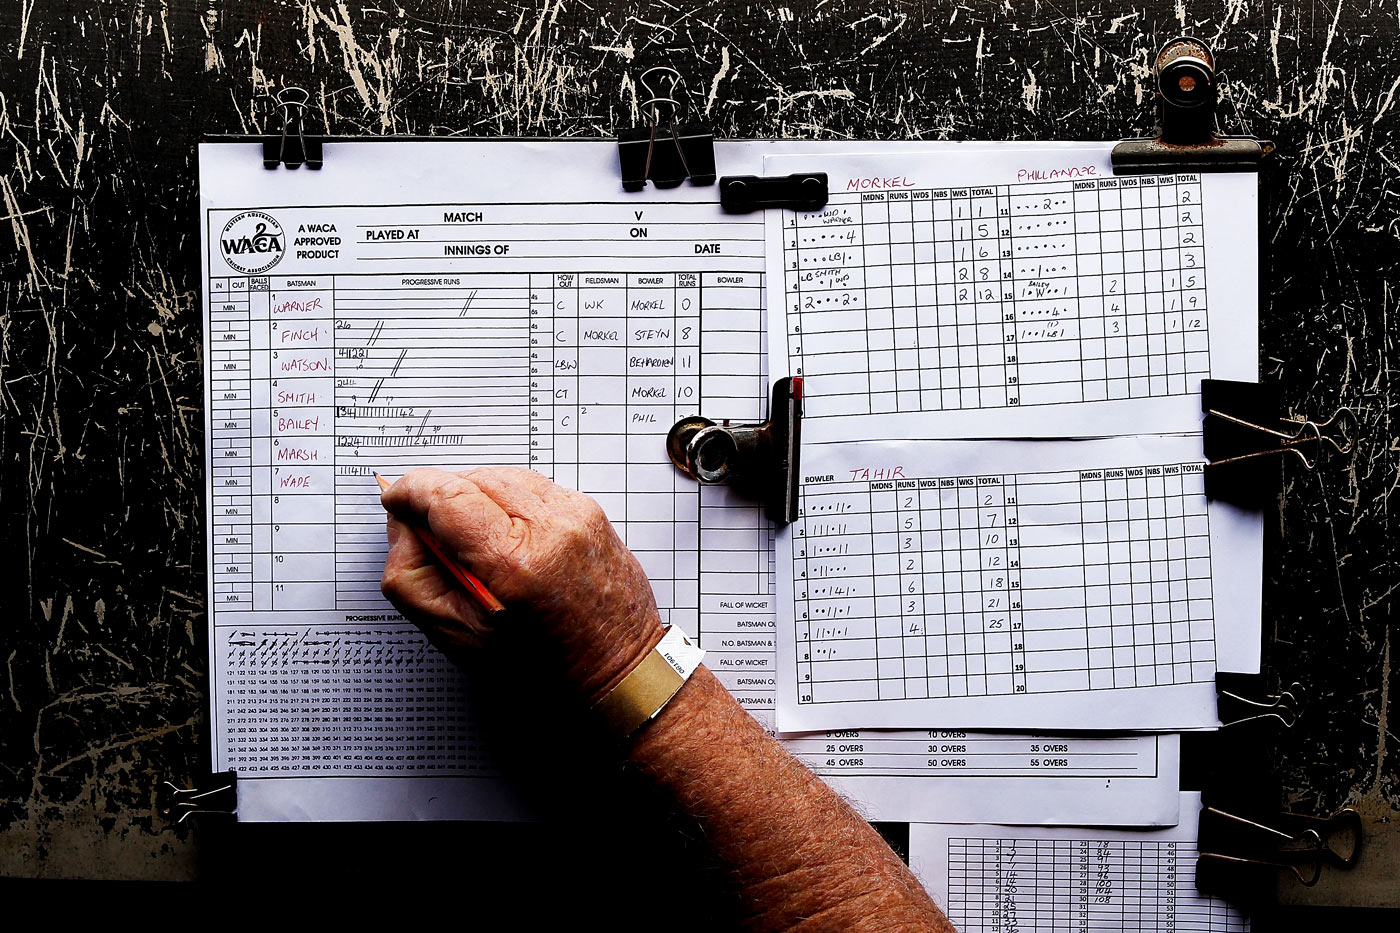 Anantha Narayanan uses runs per Test to show consistency of